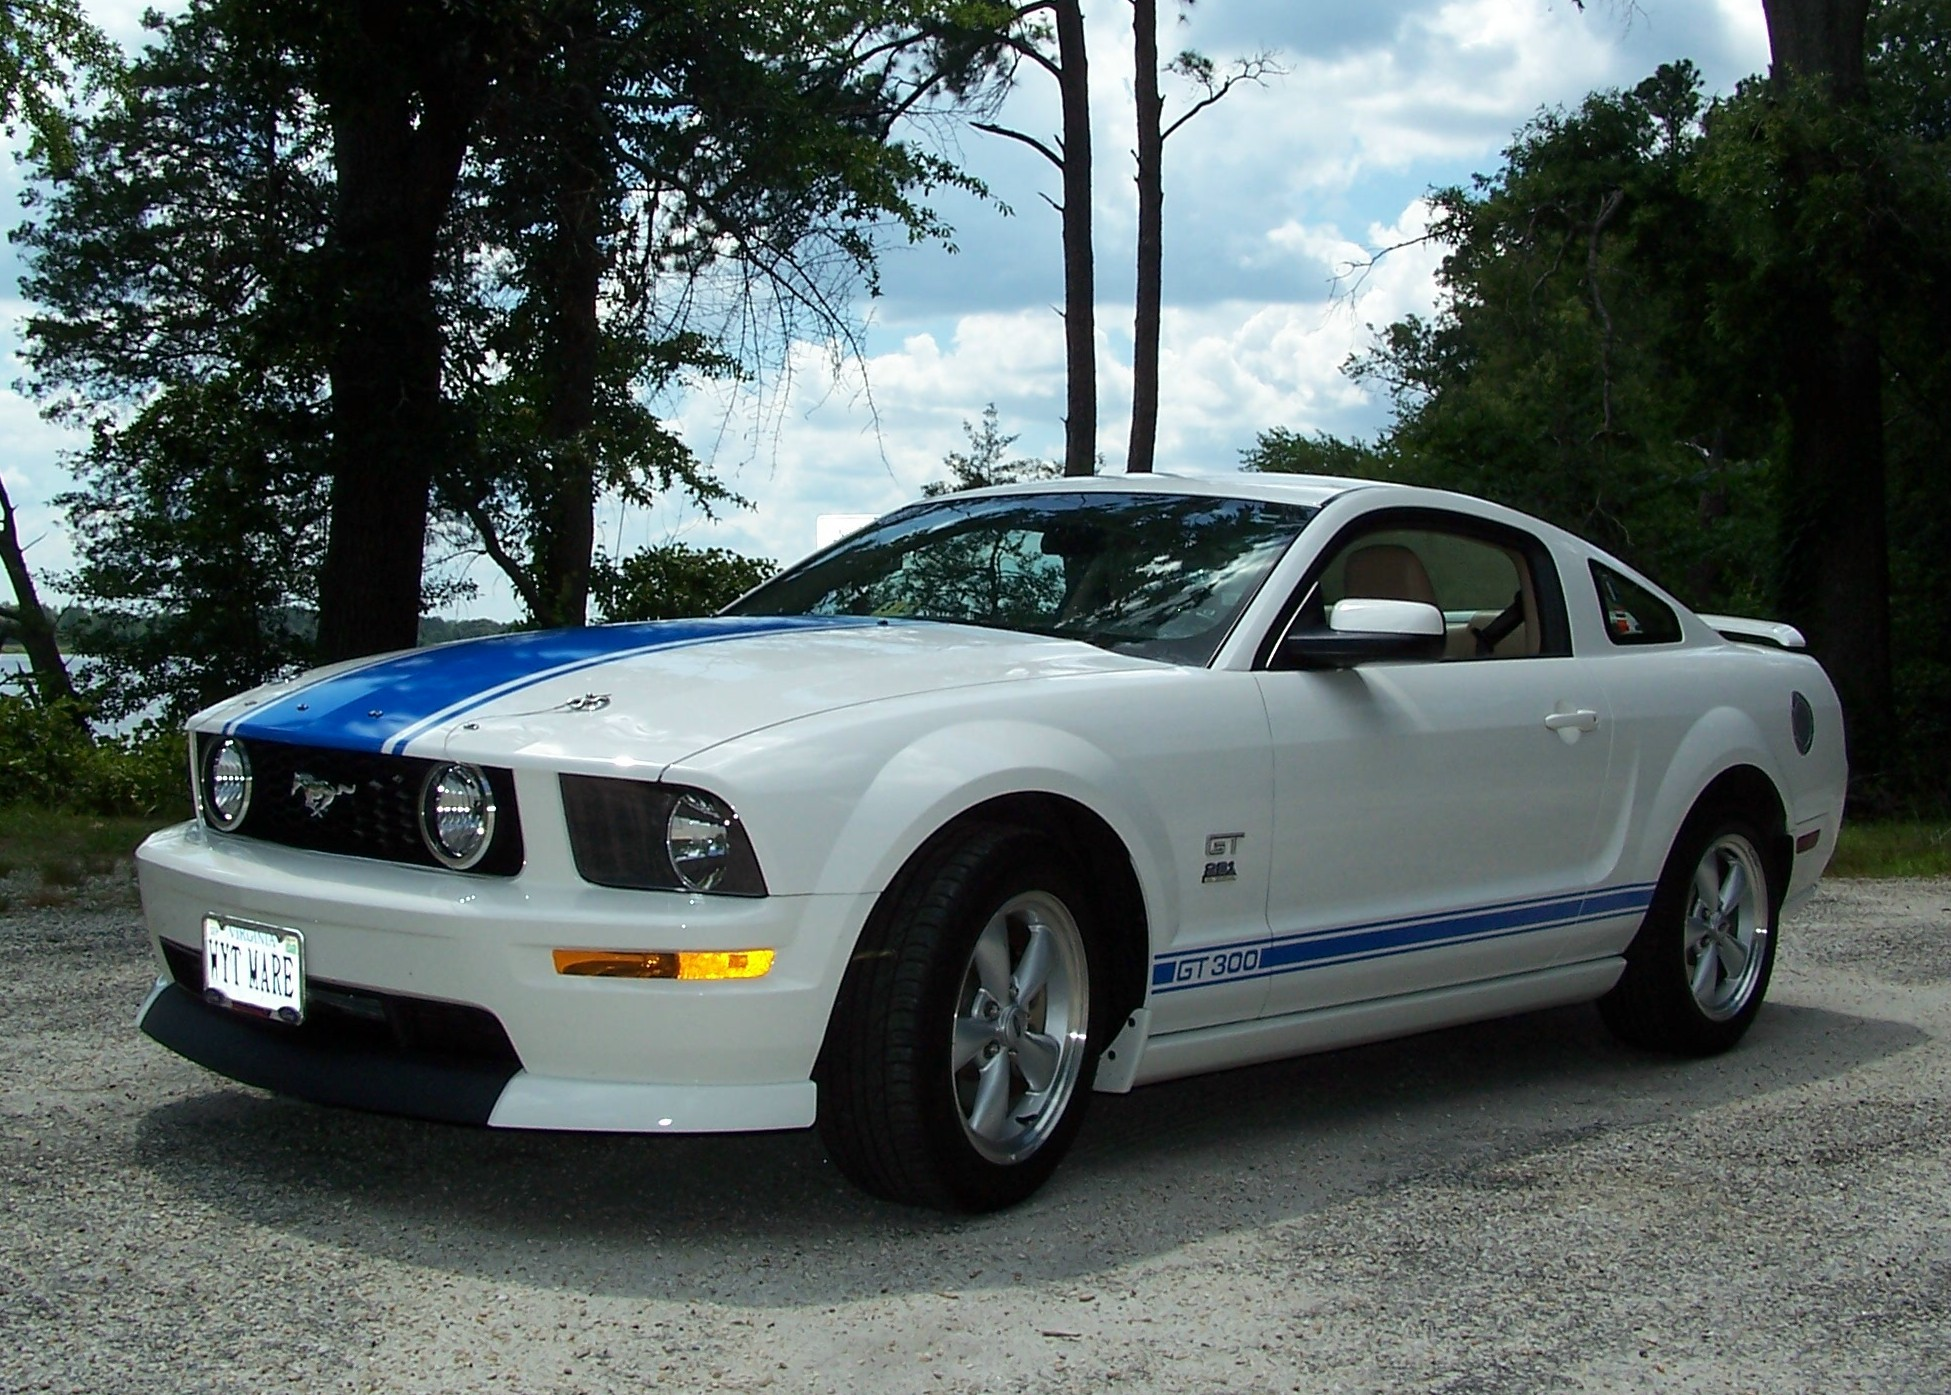 miamiknsfan's 2008 Ford Mustang